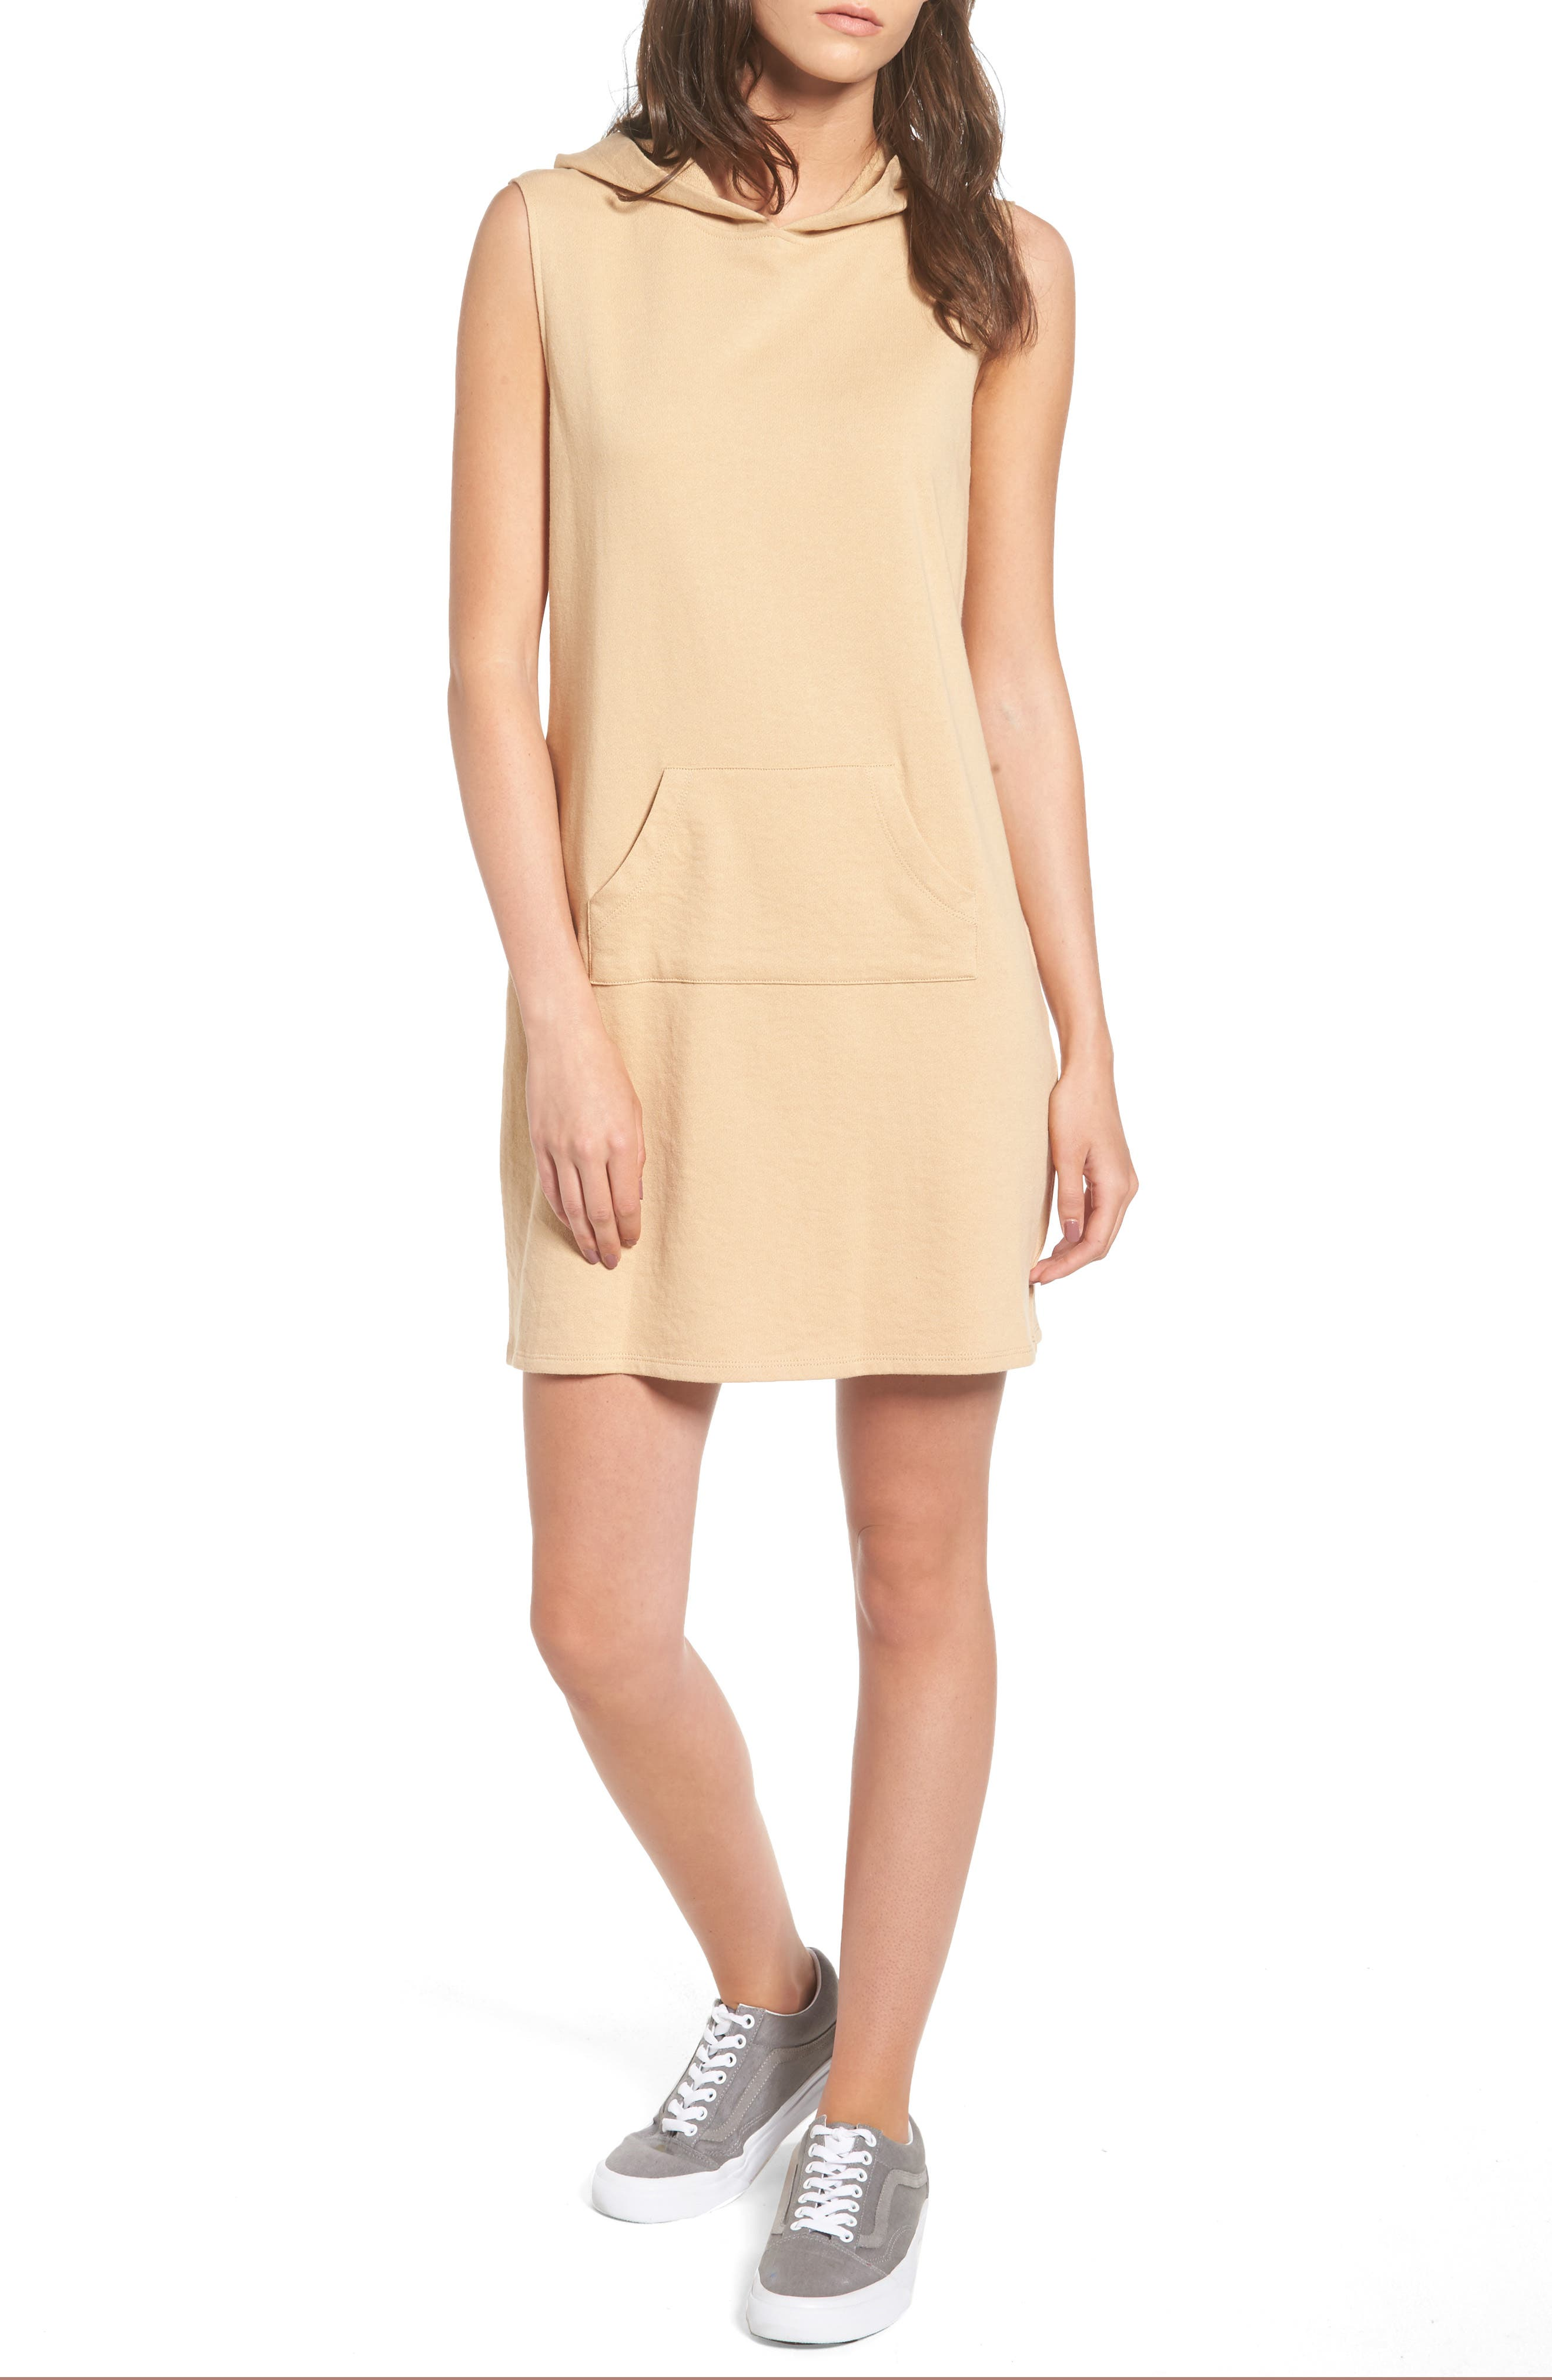 French Terry Hoodie Dress,                             Alternate thumbnail 5, color,                             250